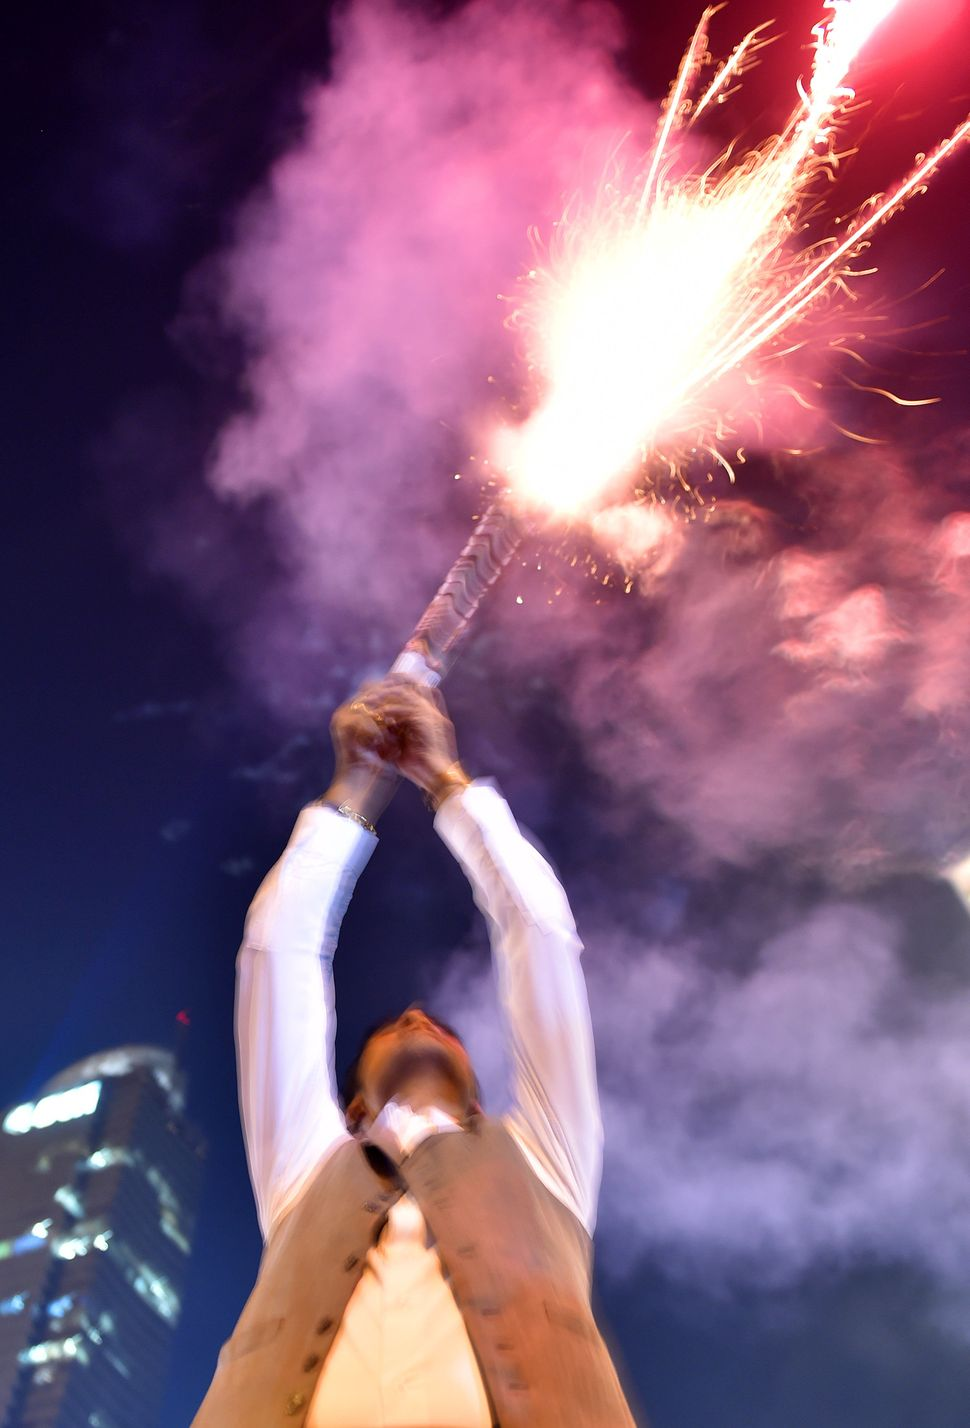 A man fires a firework during a countdown event to celebrate the new year in Jakarta on Dec. 31, 2015.